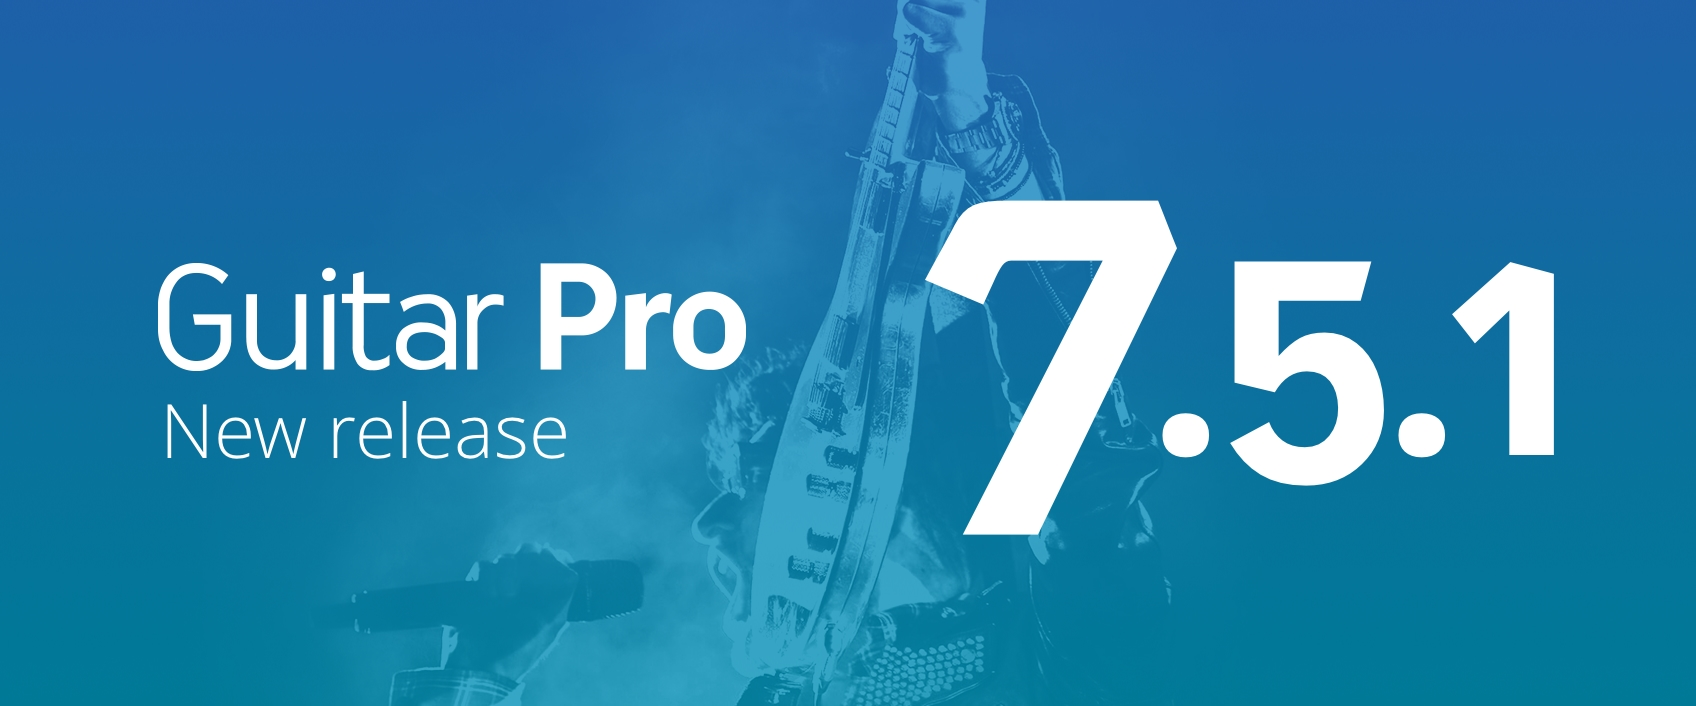 Guitar Pro 7.5.1 now available